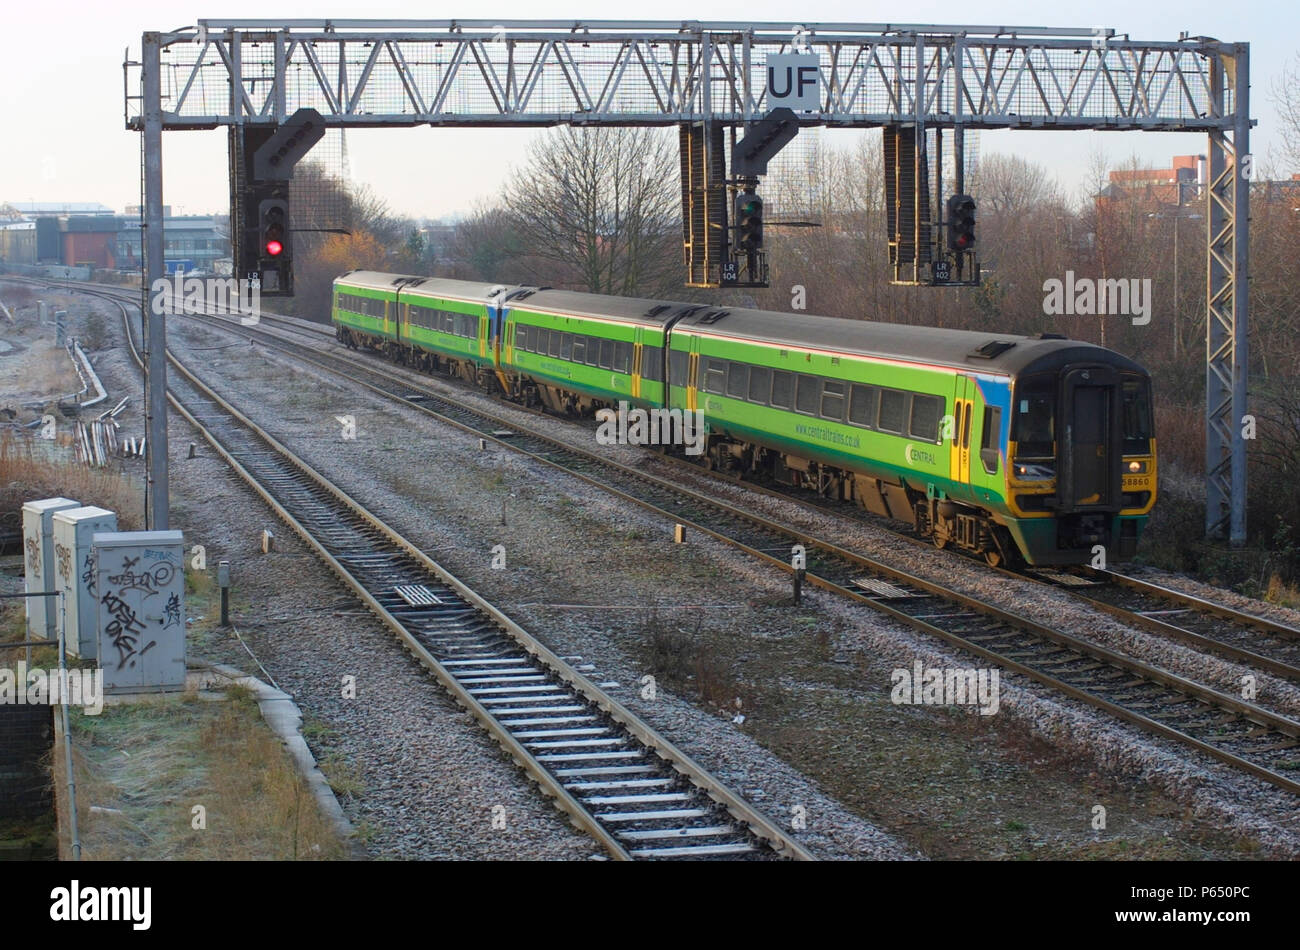 A Central Trains operated class 158 unit number 860 is seen here on approach to Leicester station from the south.. 2004. - Stock Image